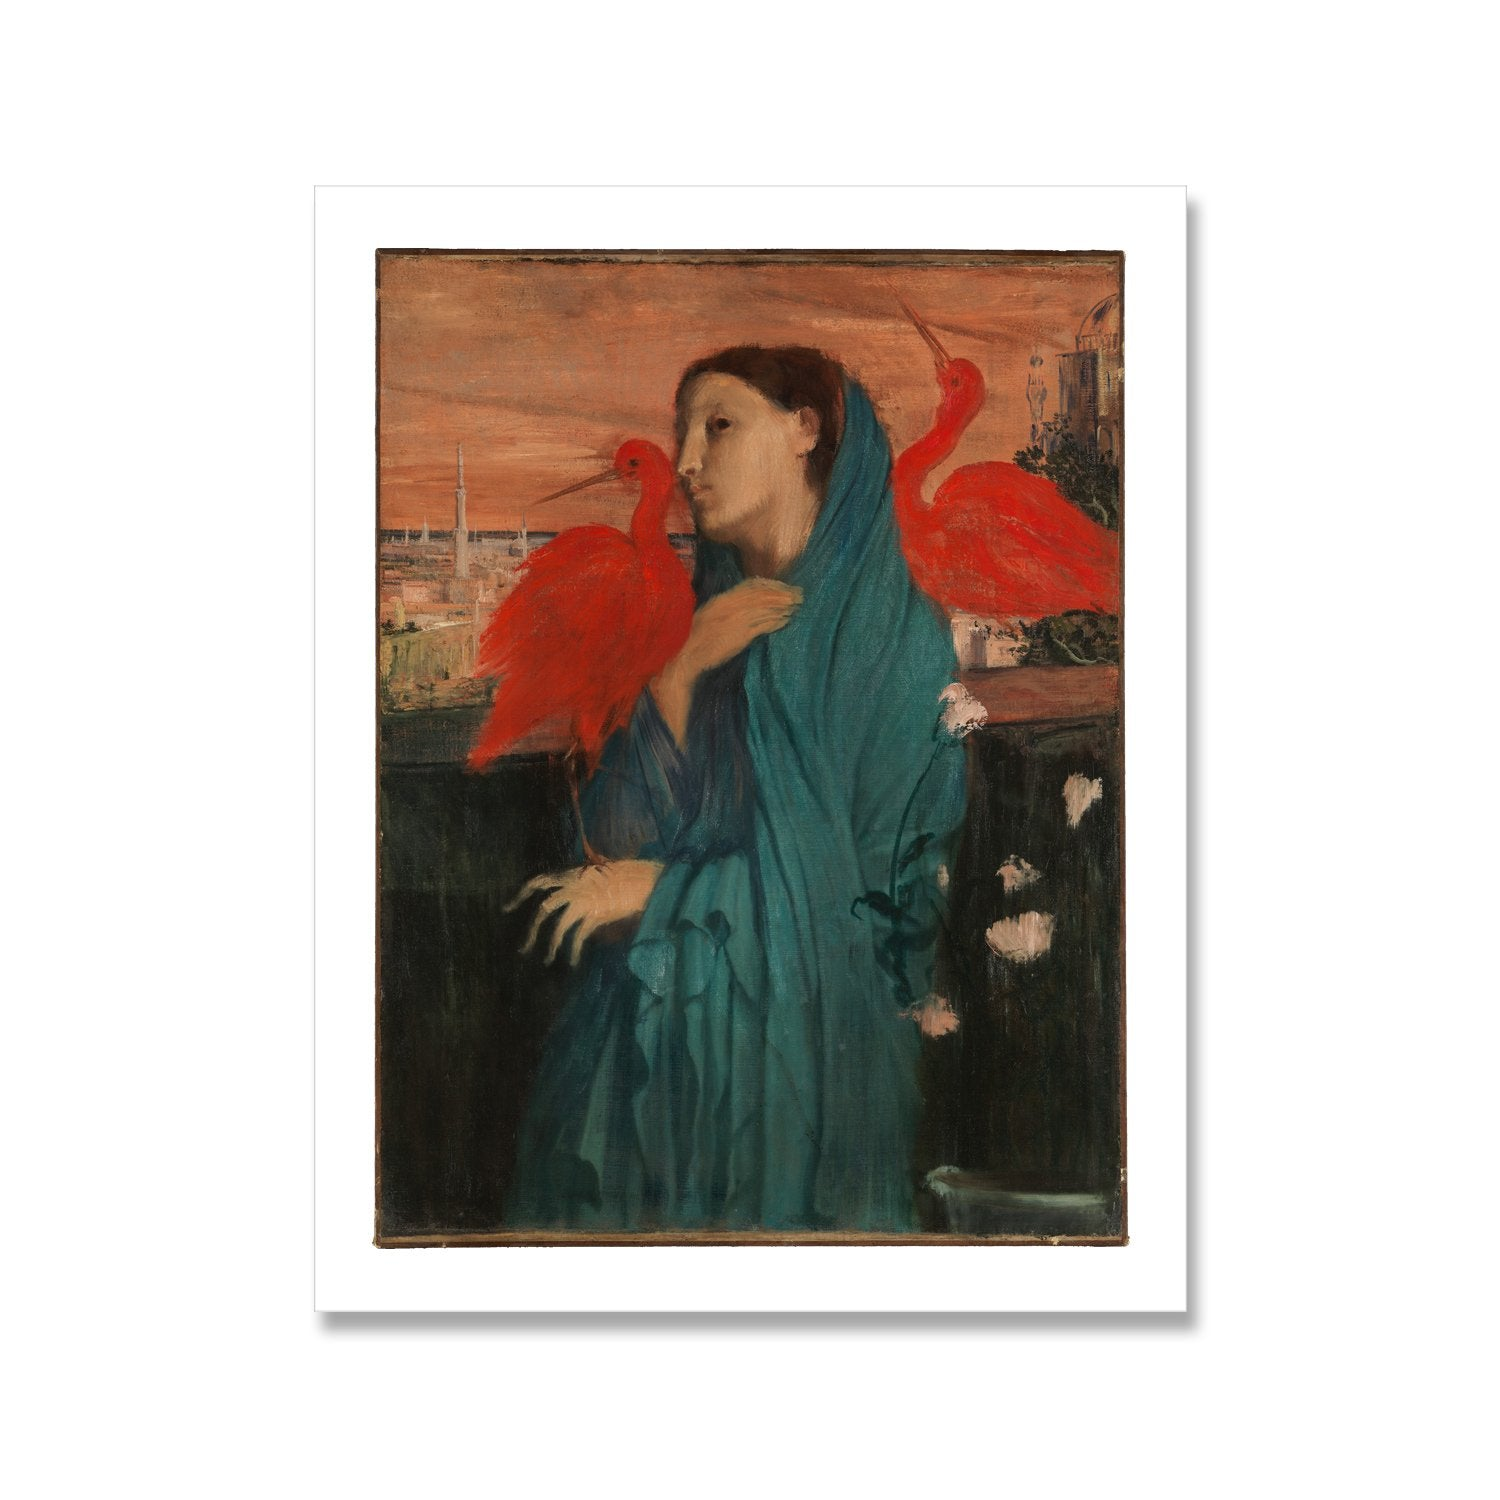 vintage painting of young woman with scarlet ibises by edgar degas, as a print